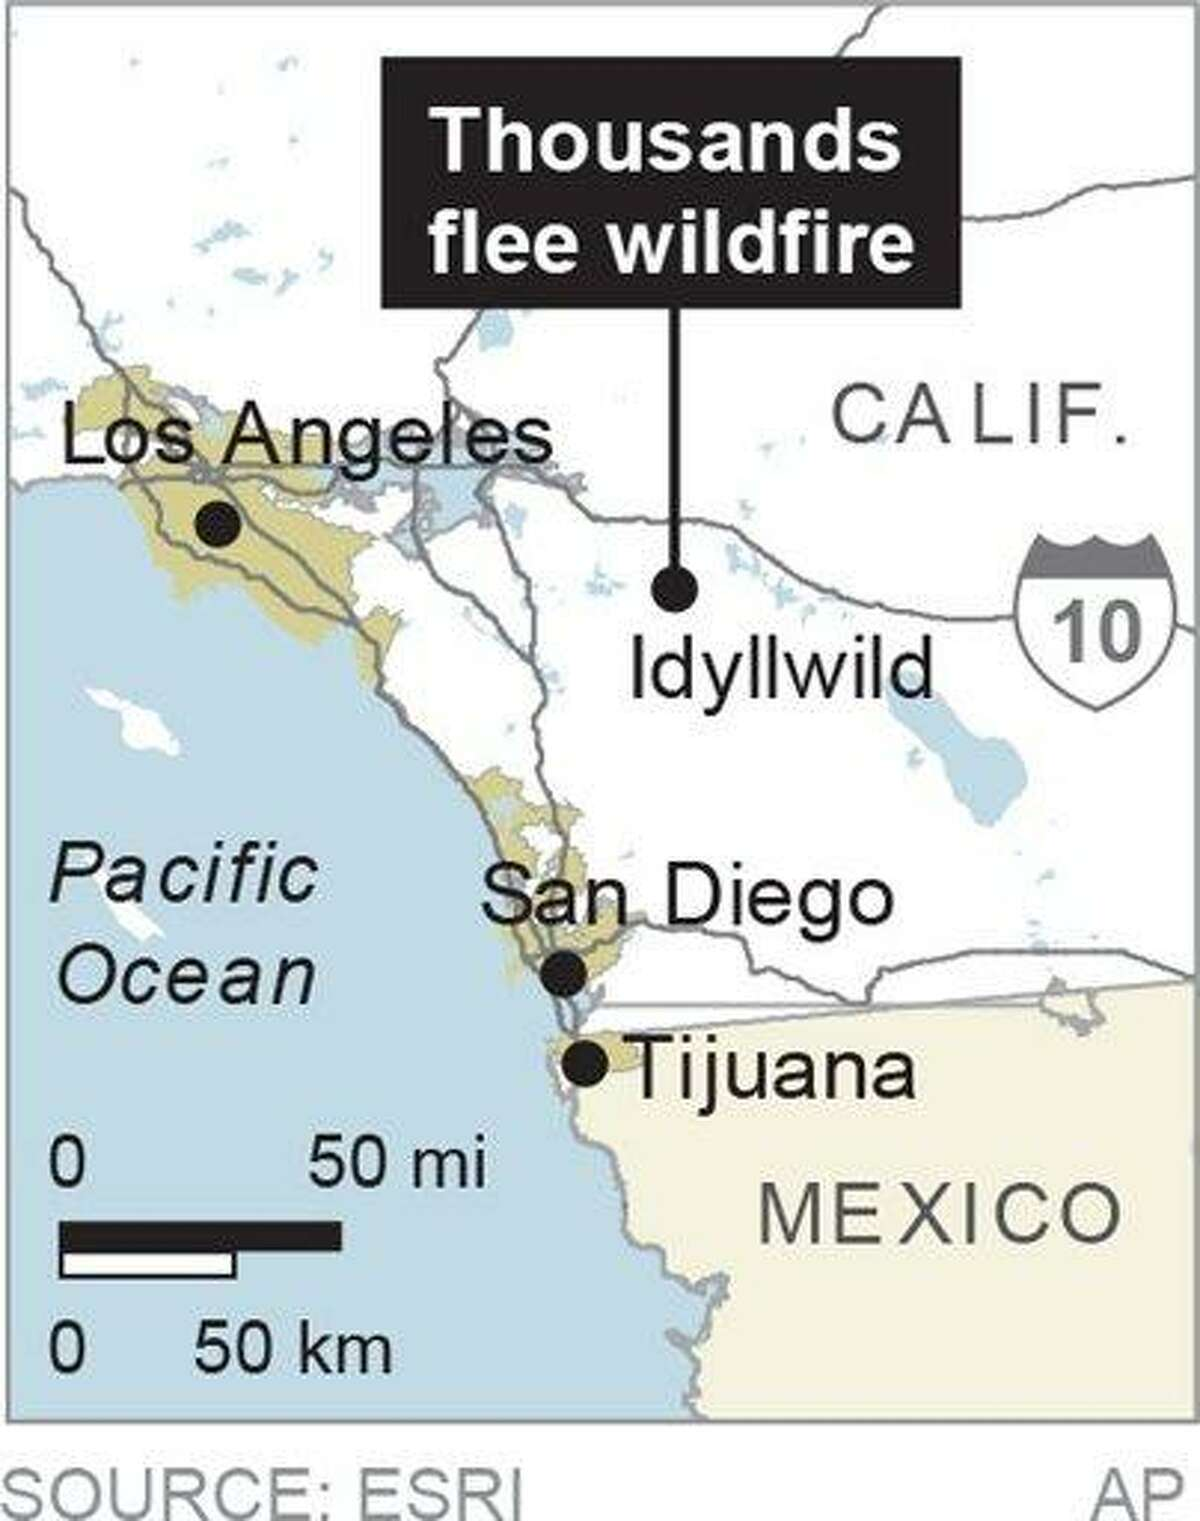 Map locates Idyllwild, Calif., where 6,000 people were forced to flee wildfires.